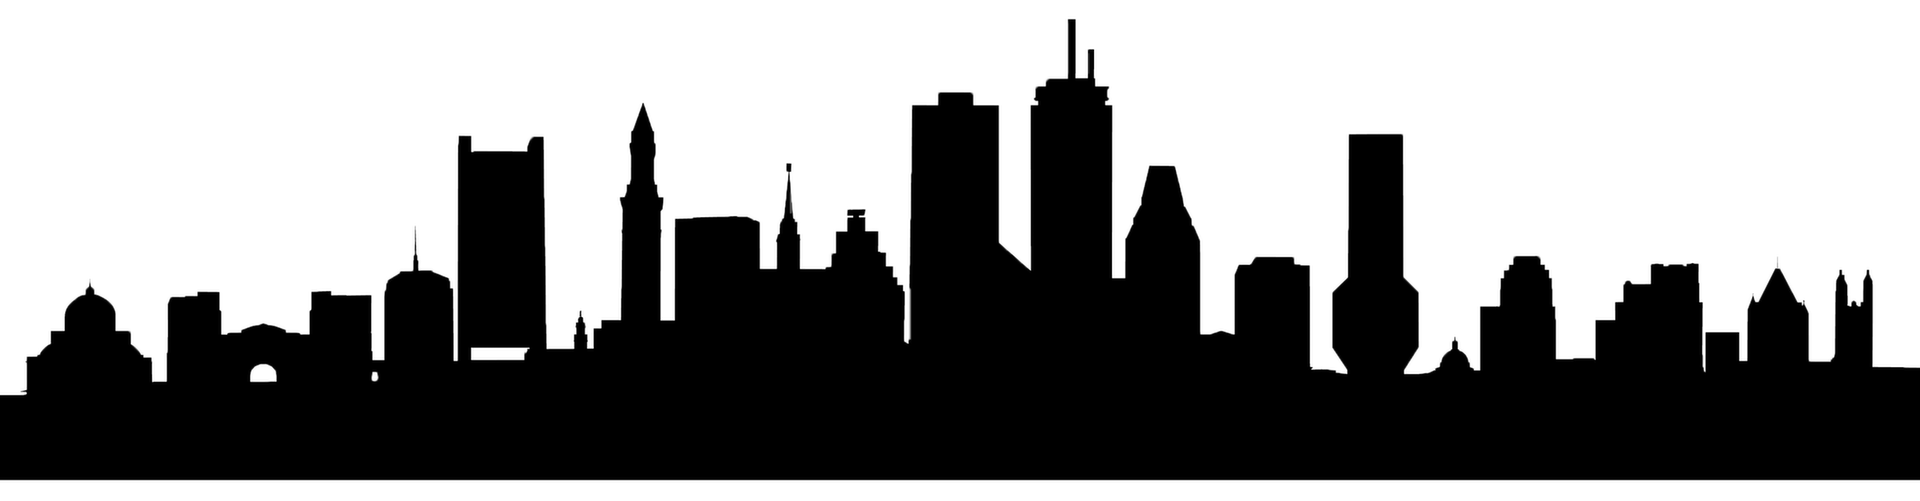 Boston skyline png. Royalty free silhouette transprent